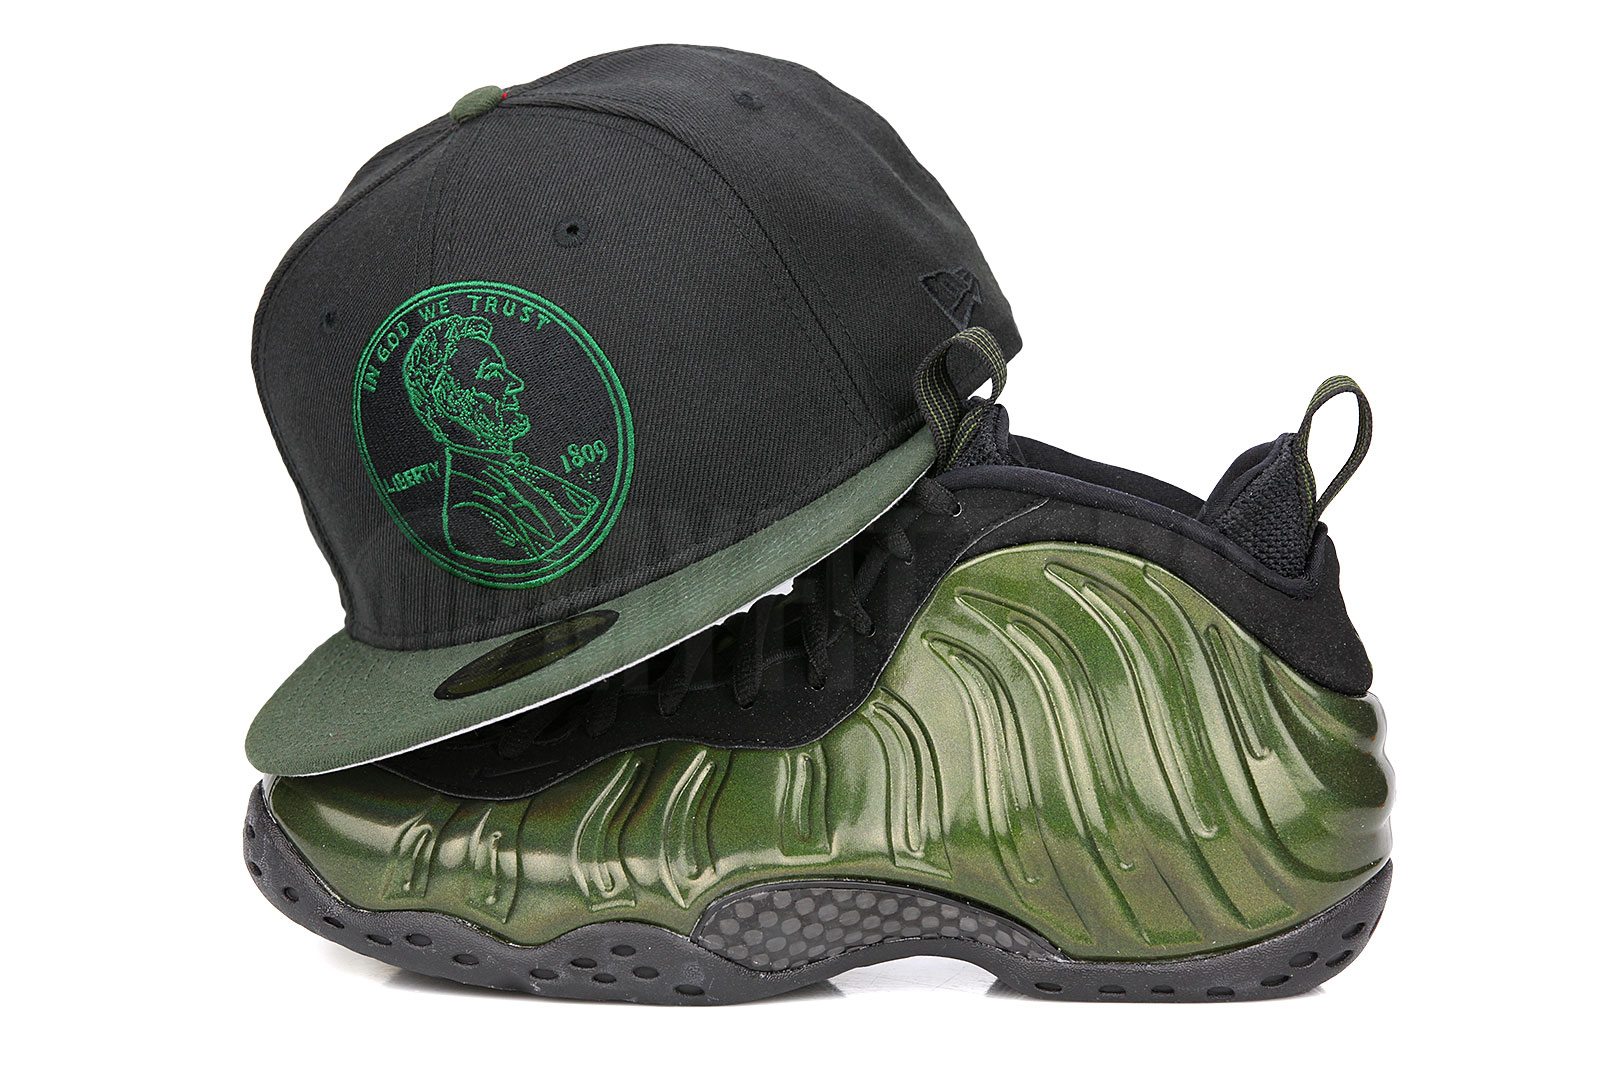 New Arrivals at myfitteds.com - New Era Hats - Nike Sportswear - Air Jordan  Sneakers